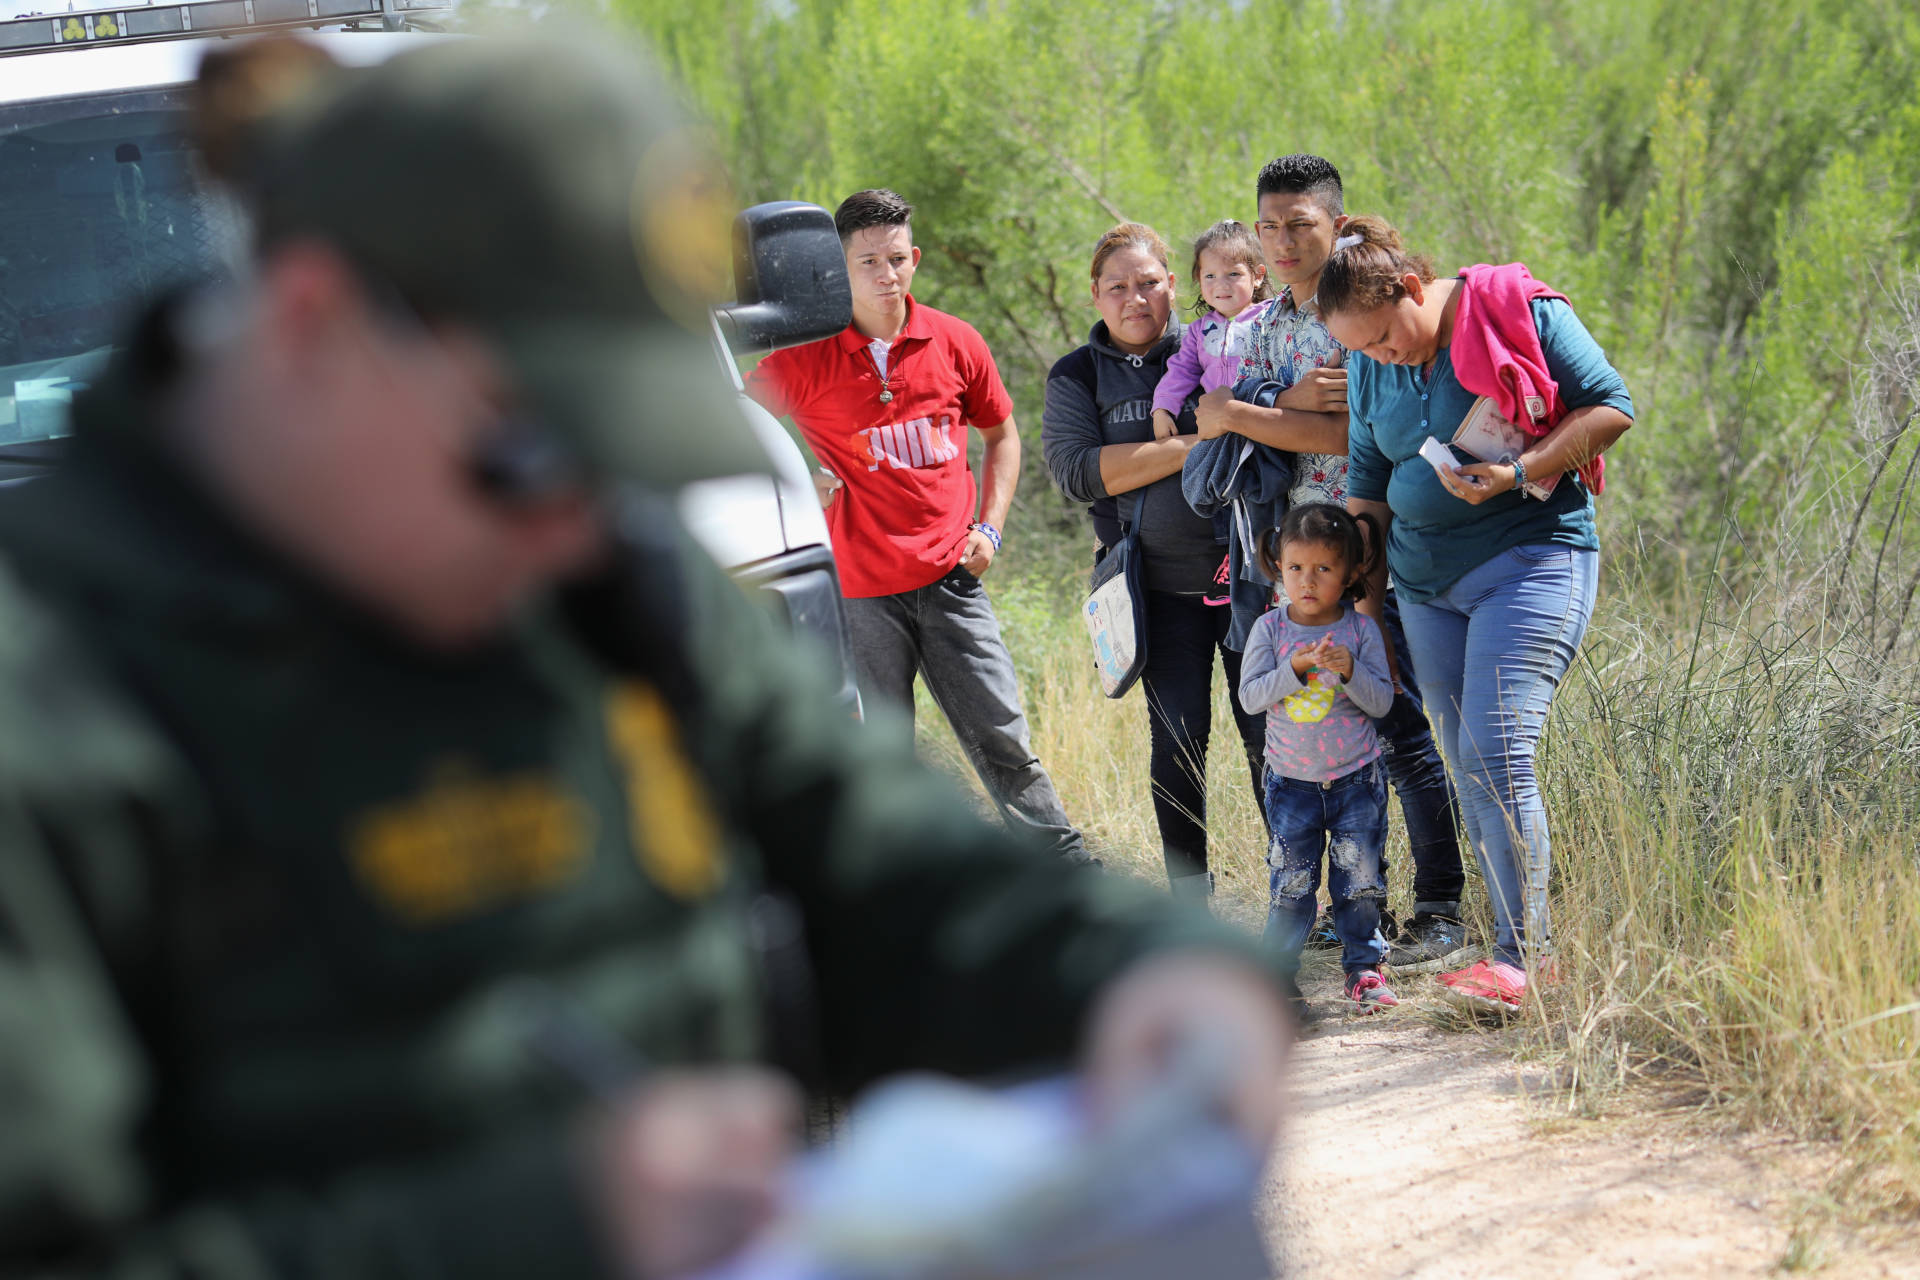 Central American asylum-seekers wait as U.S. Border Patrol agents take groups of them into custody on June 12, 2018, near McAllen, Texas. The families were then sent to a U.S. Customs and Border Protection processing center for possible separation.  John Moore/Getty Images